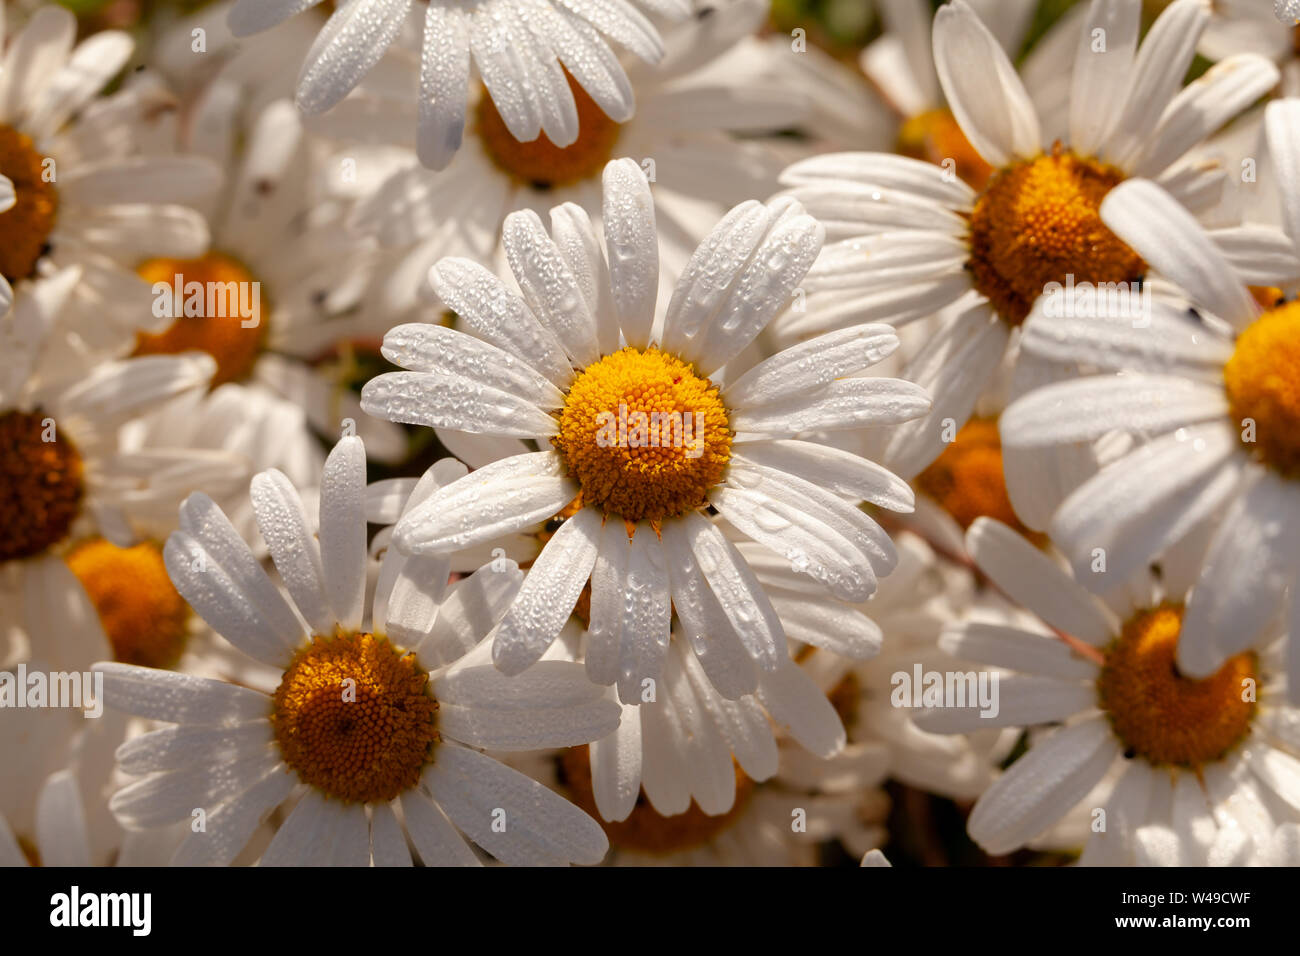 Big wild daisy (Oxeye) flowers close up with morning dew. Natural plants in nature setting. White petals and yellow heads Stock Photo